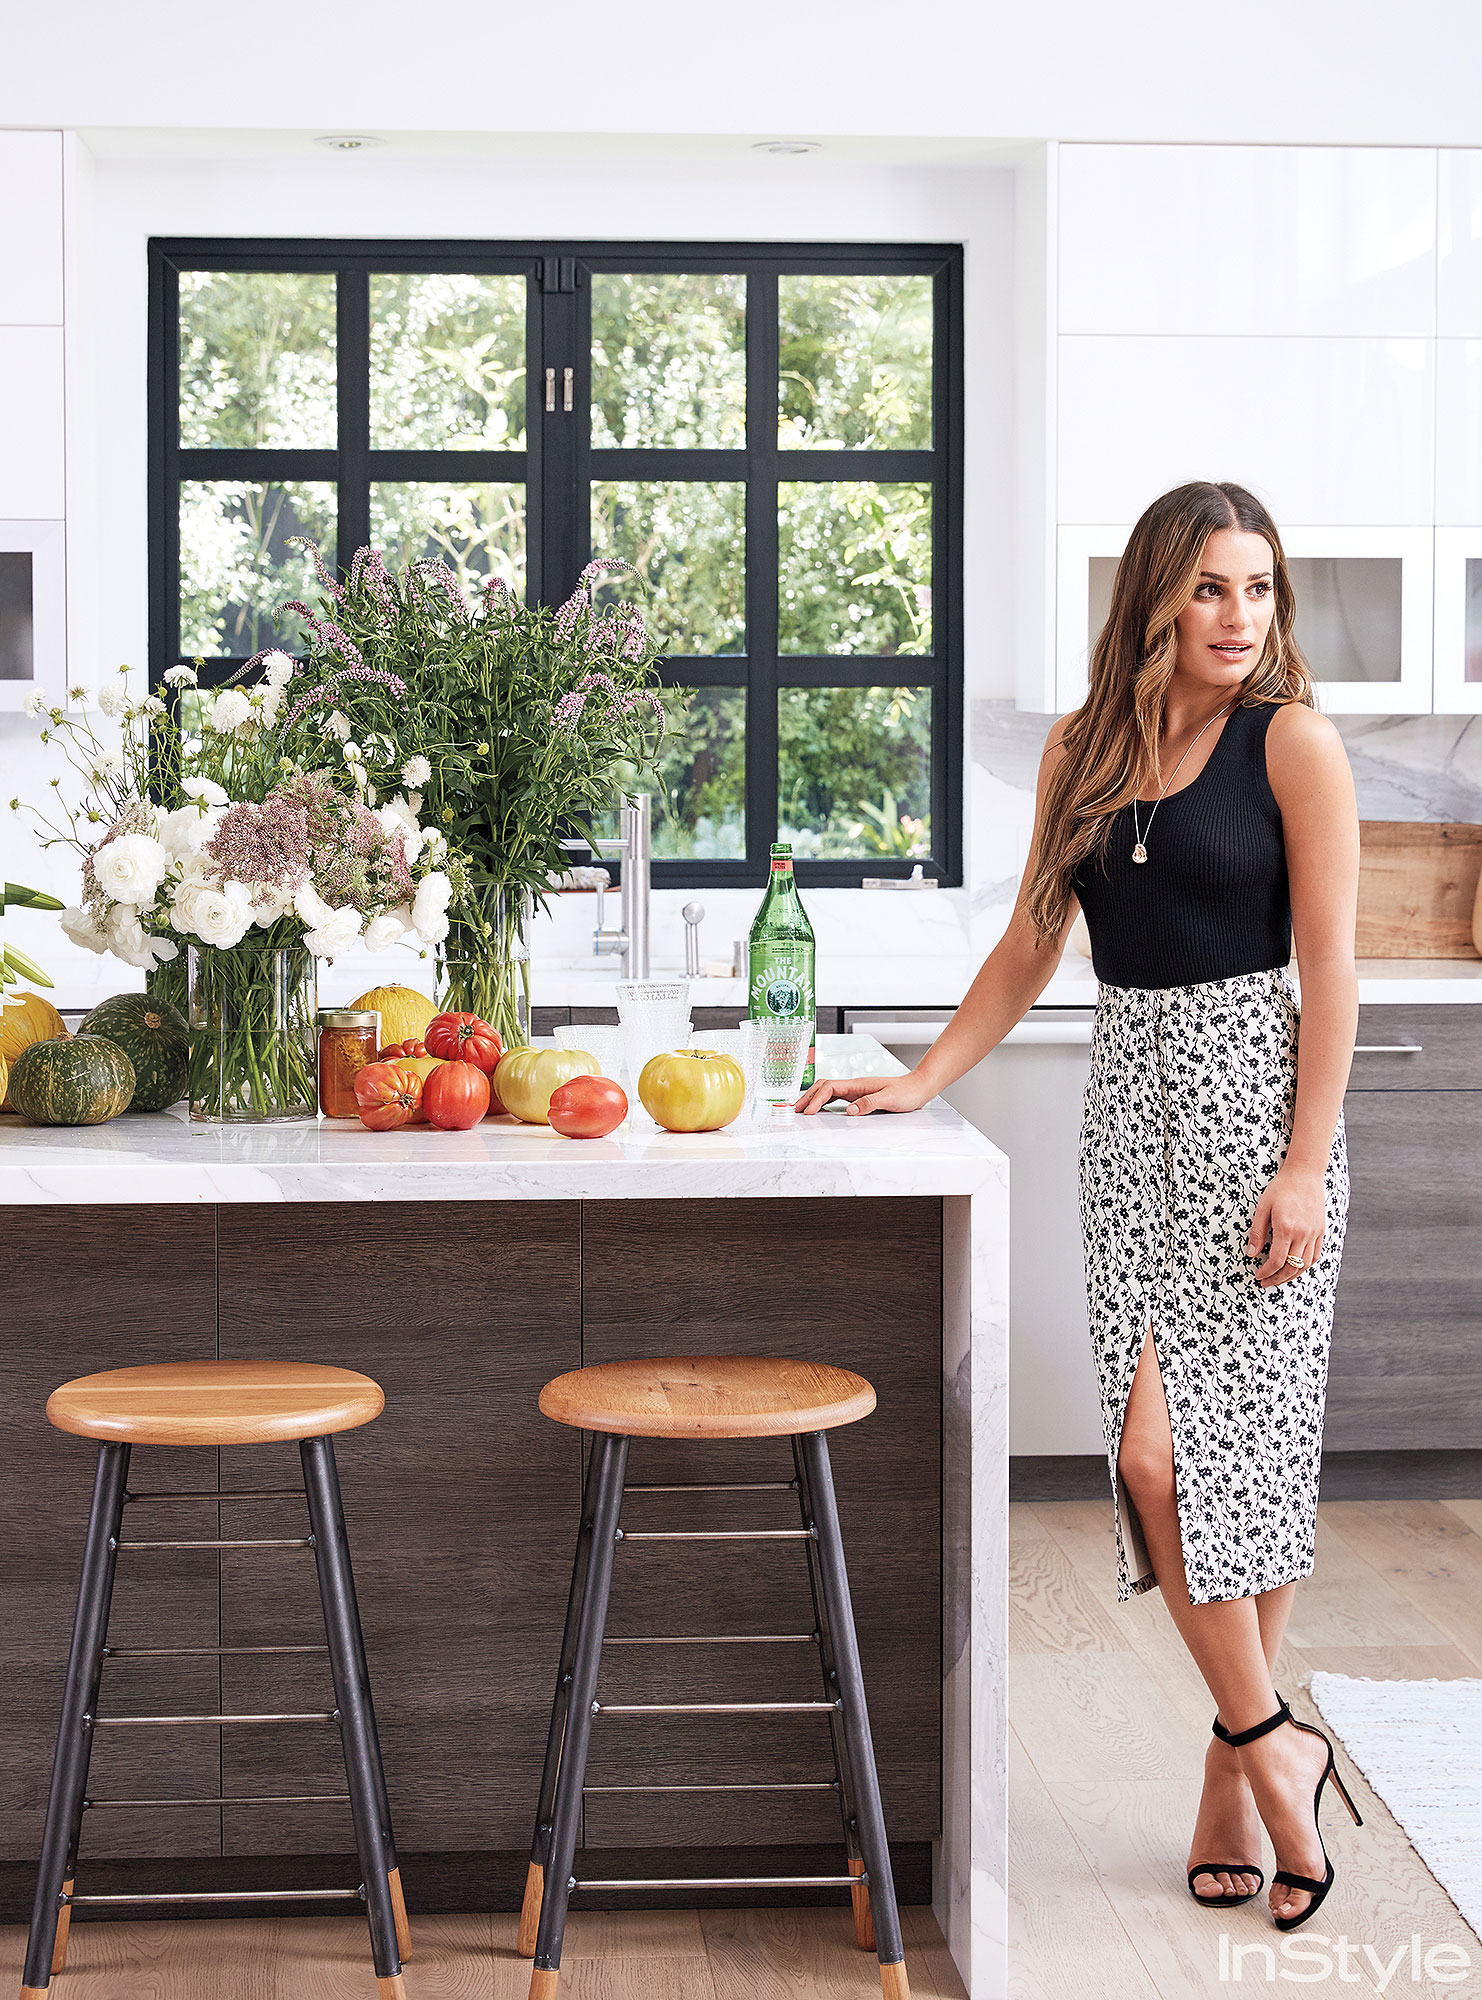 Lea Michele's home from a special issue of InStyle